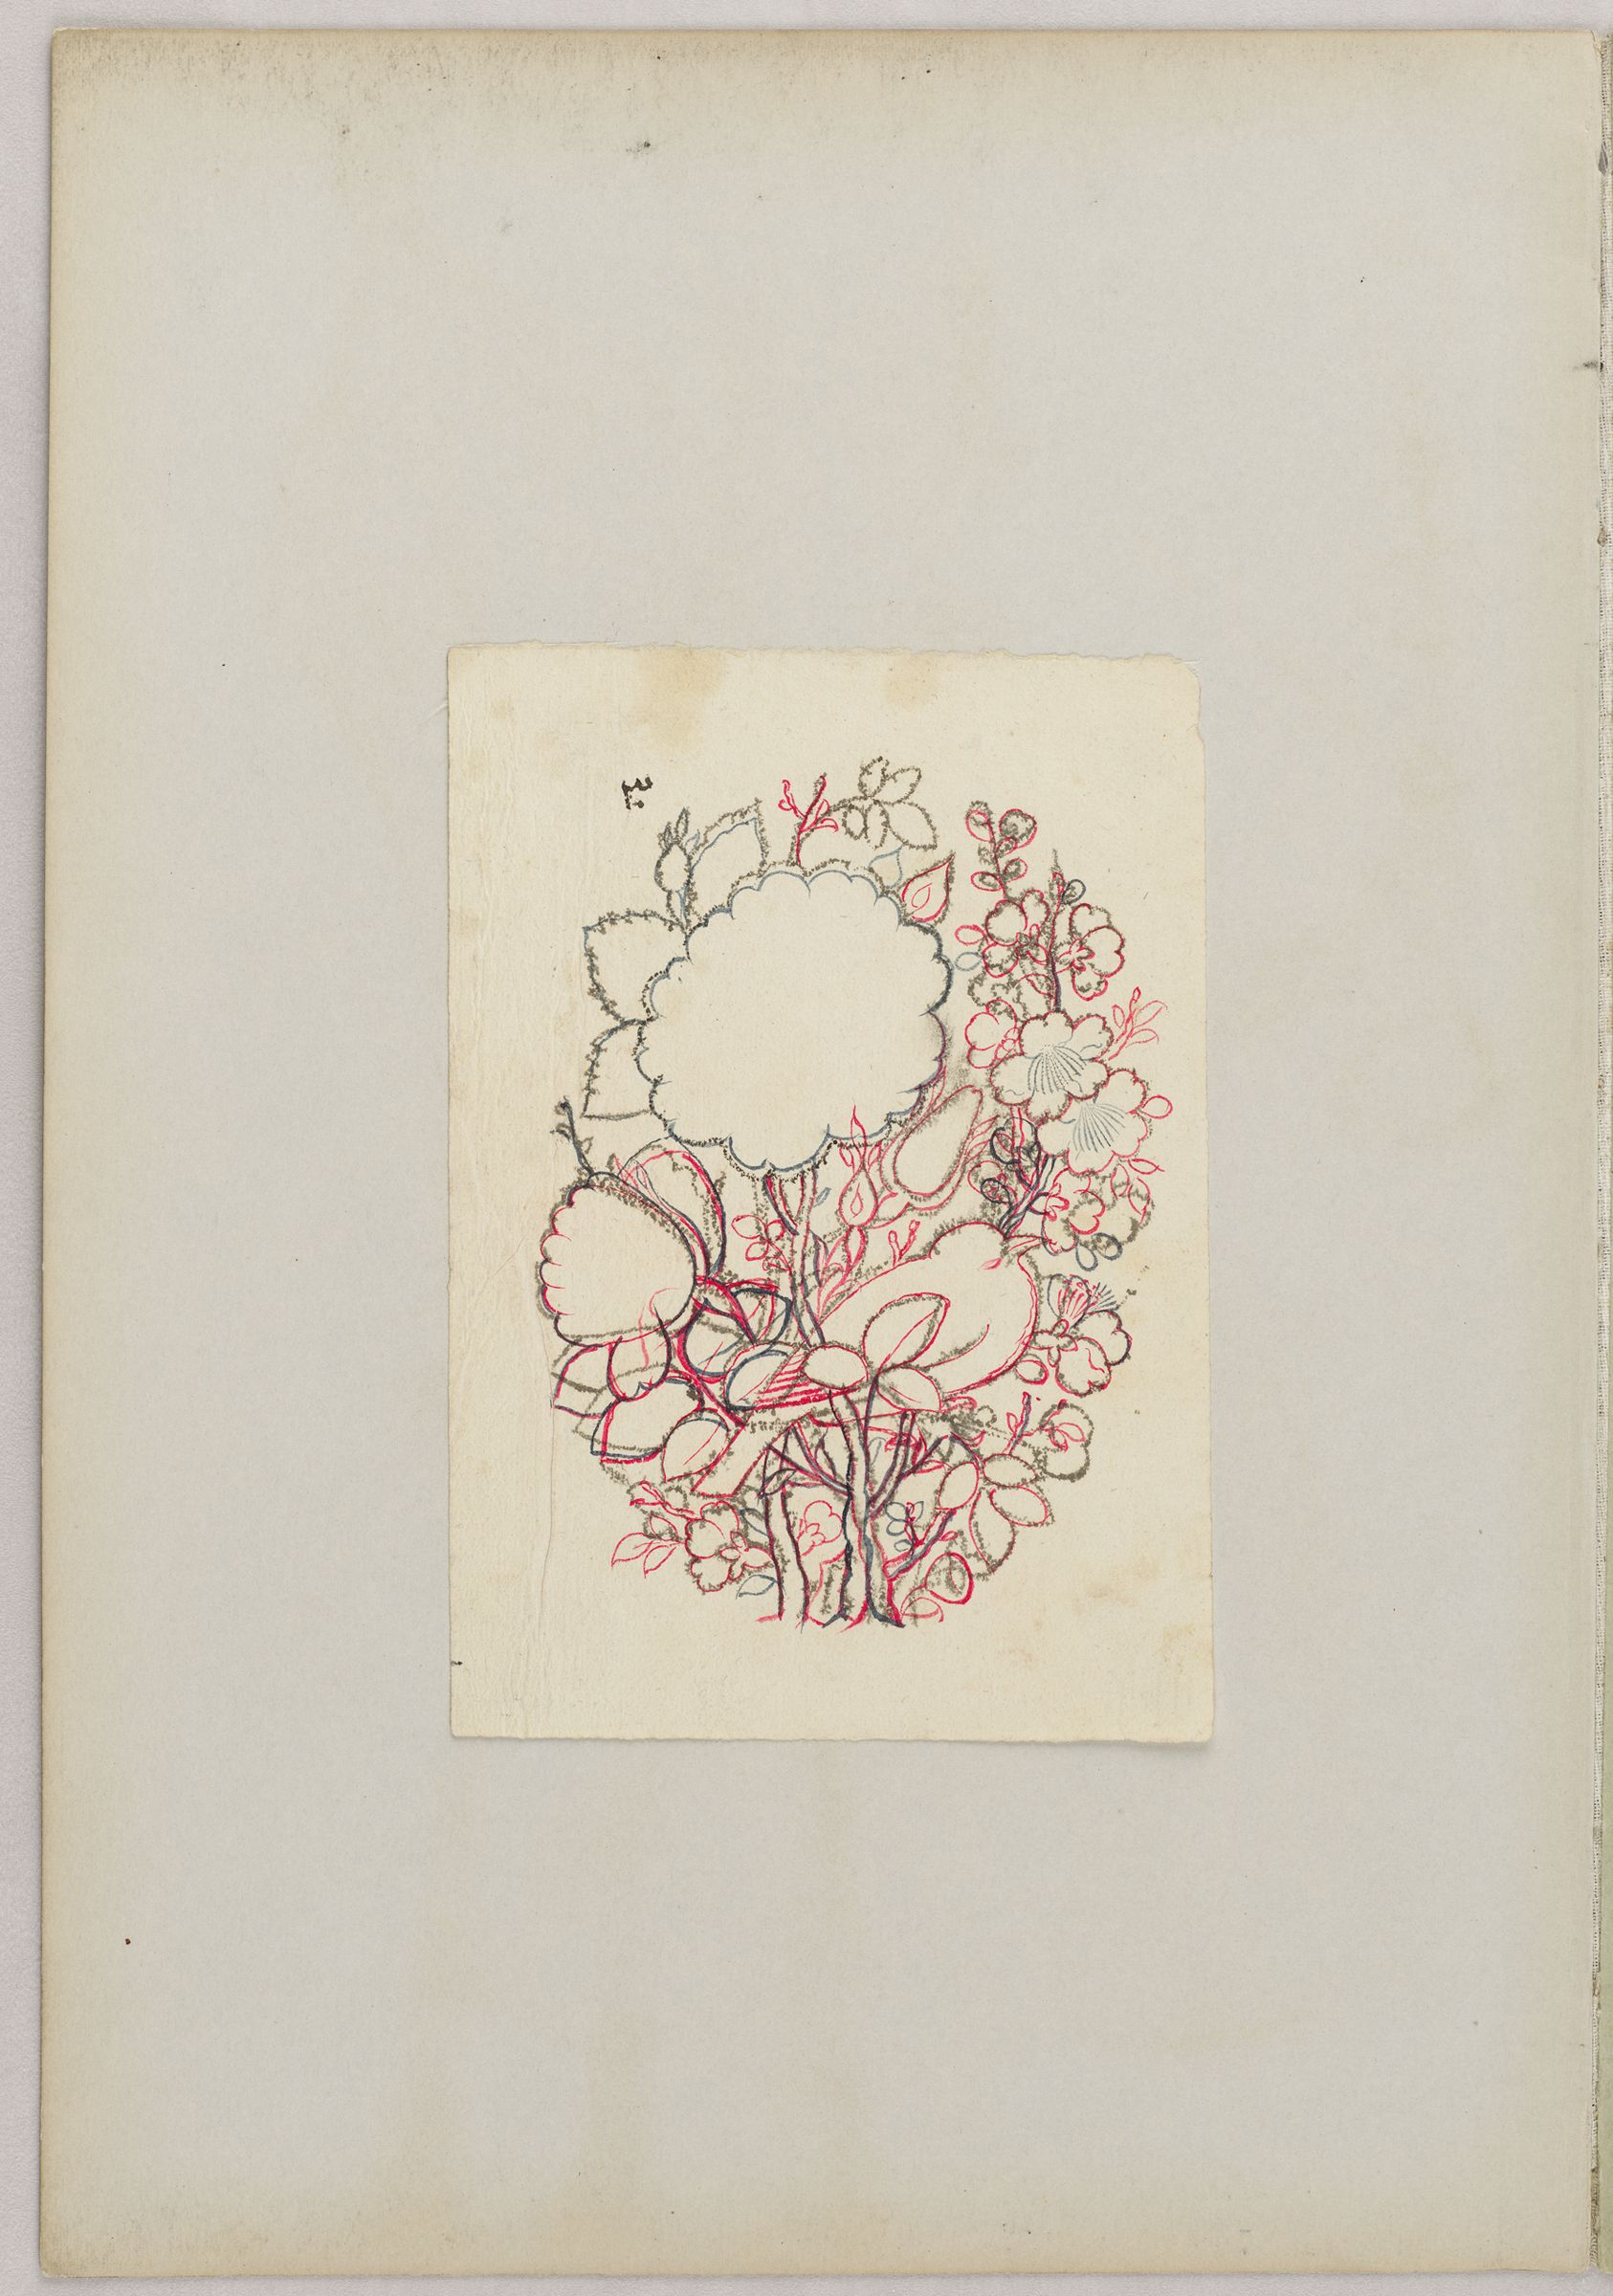 Folio 48 From An Album Of Drawings And Paintings: Bird And Flower Design (Recto); Blank Page (Verso)